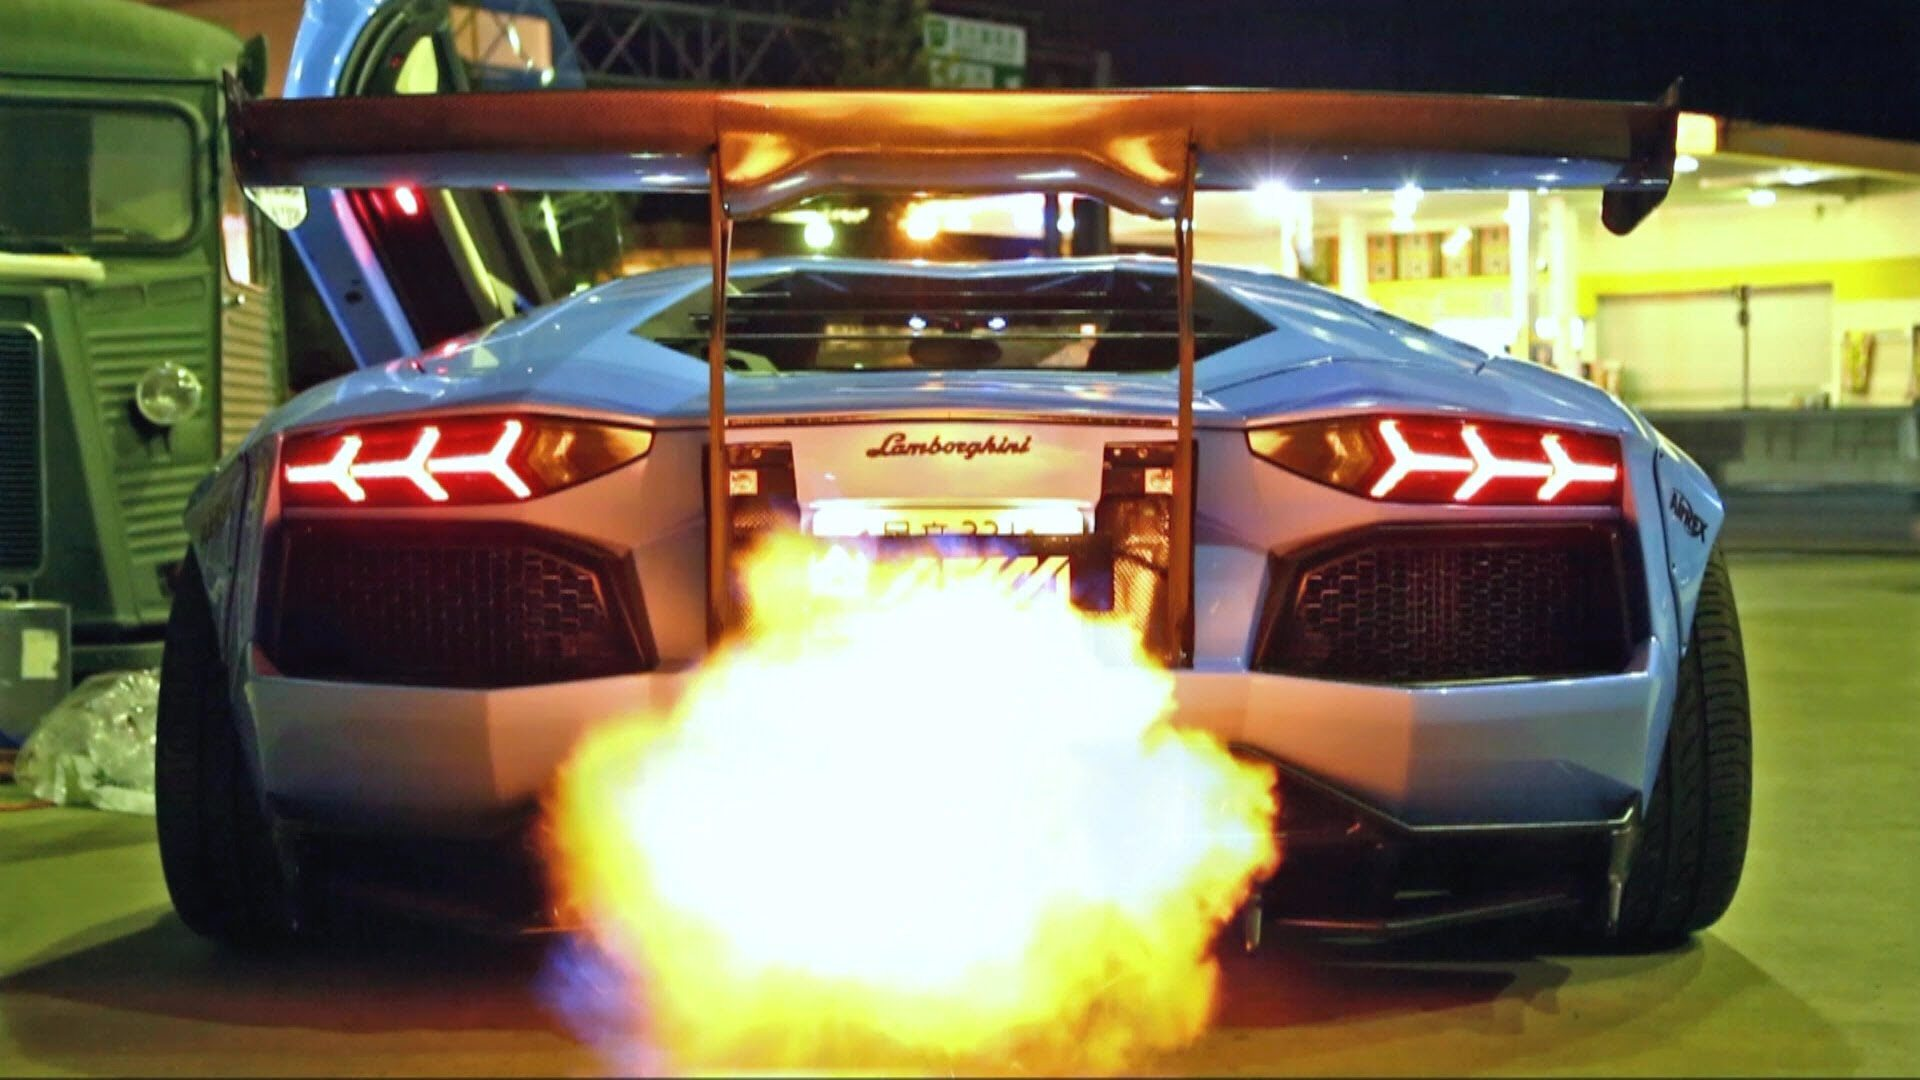 Why does Aventador spit flames? - Quora